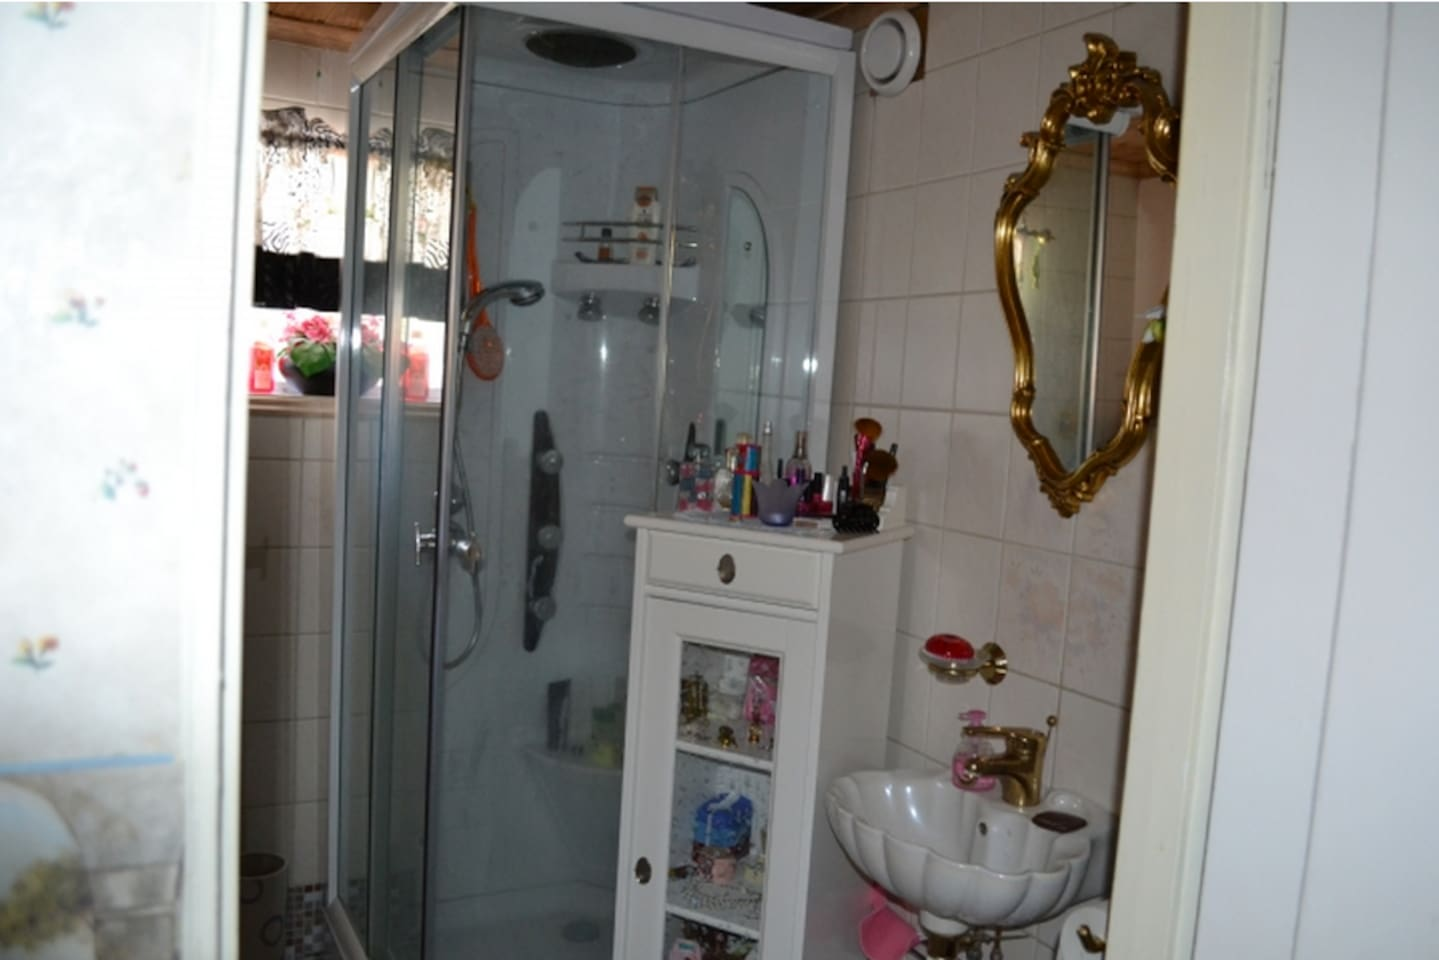 Bed & Box - Horses, Bath & Fishing - Houses for Rent in ...